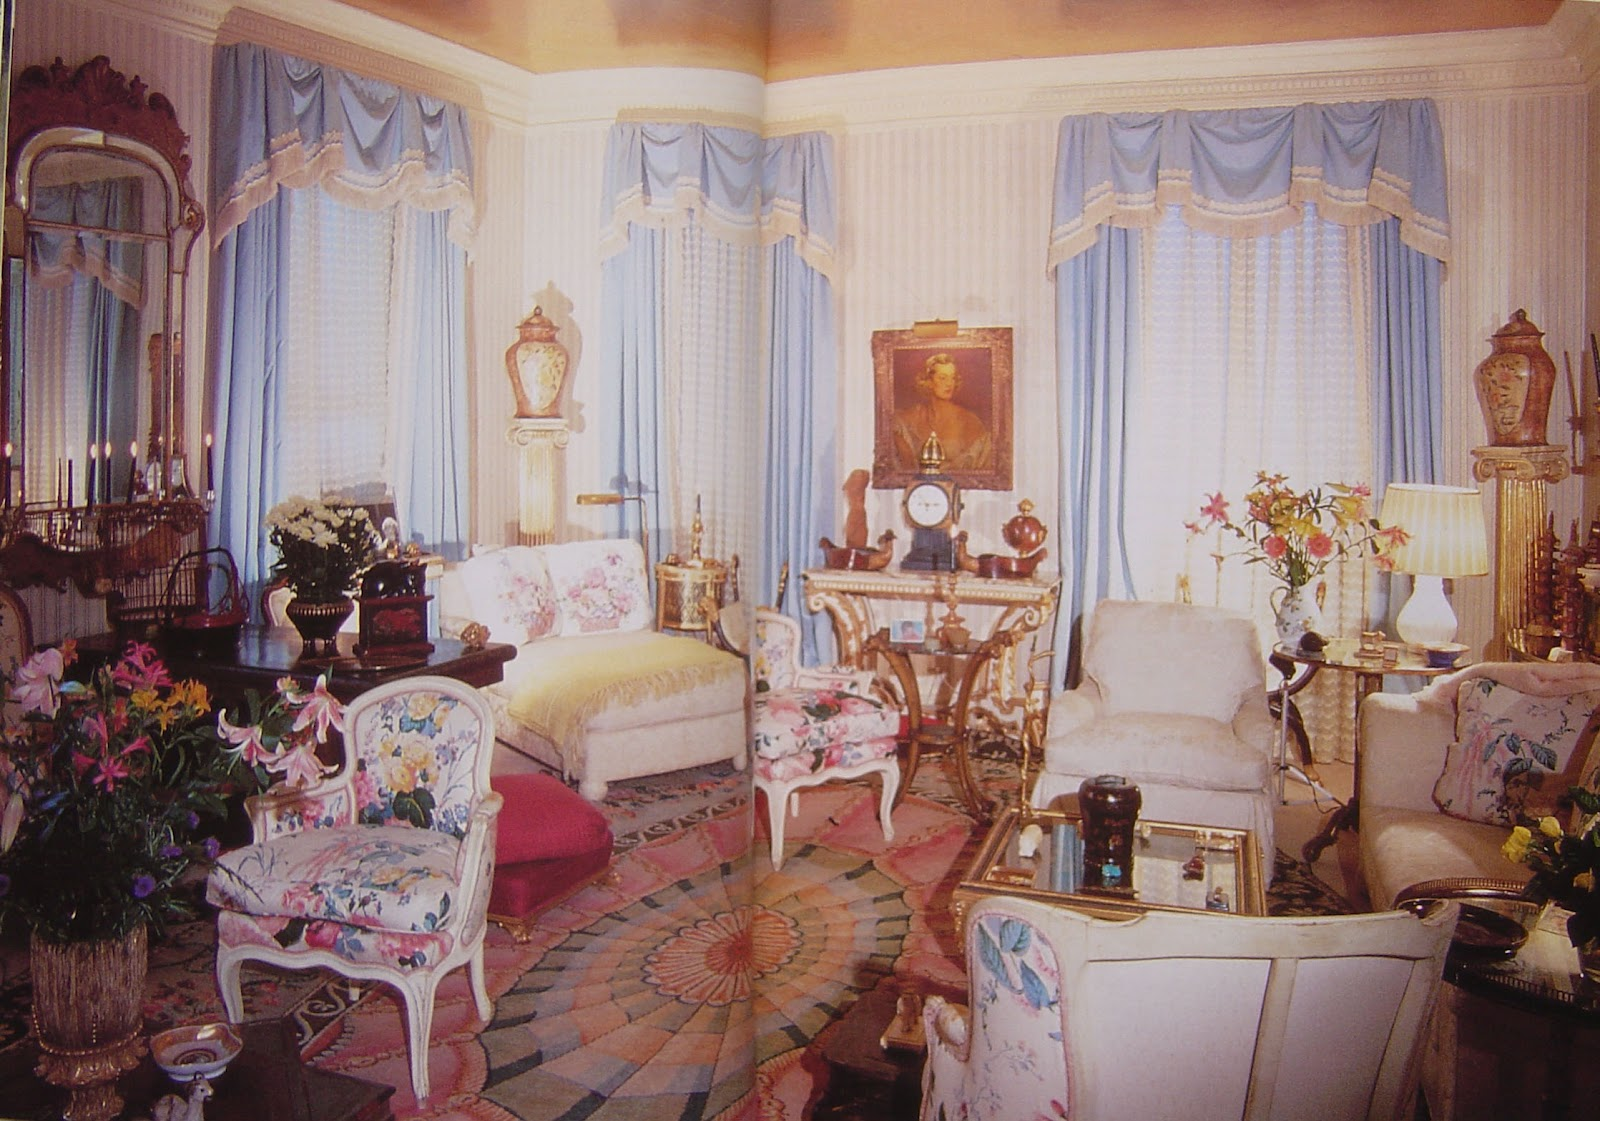 sister parishs living room at 960 fifth avenue photo from parish hadley sixty years of american decoration - Sister Parrish